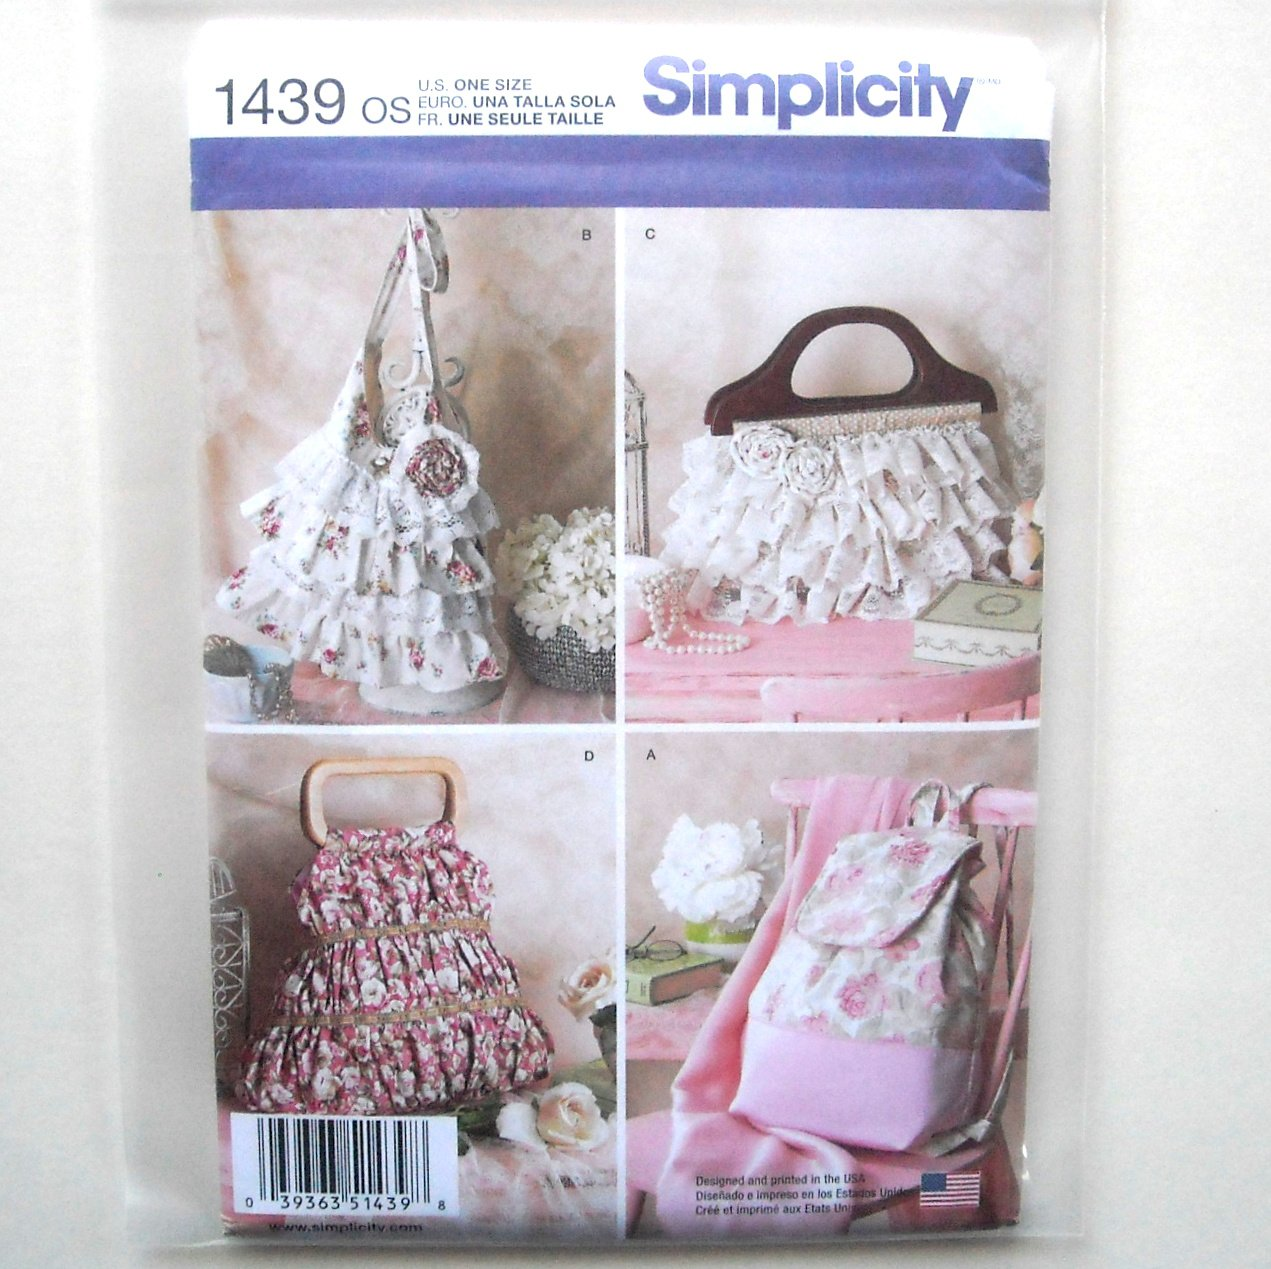 4 Bags One Size Simplicity Sewing Pattern 1439